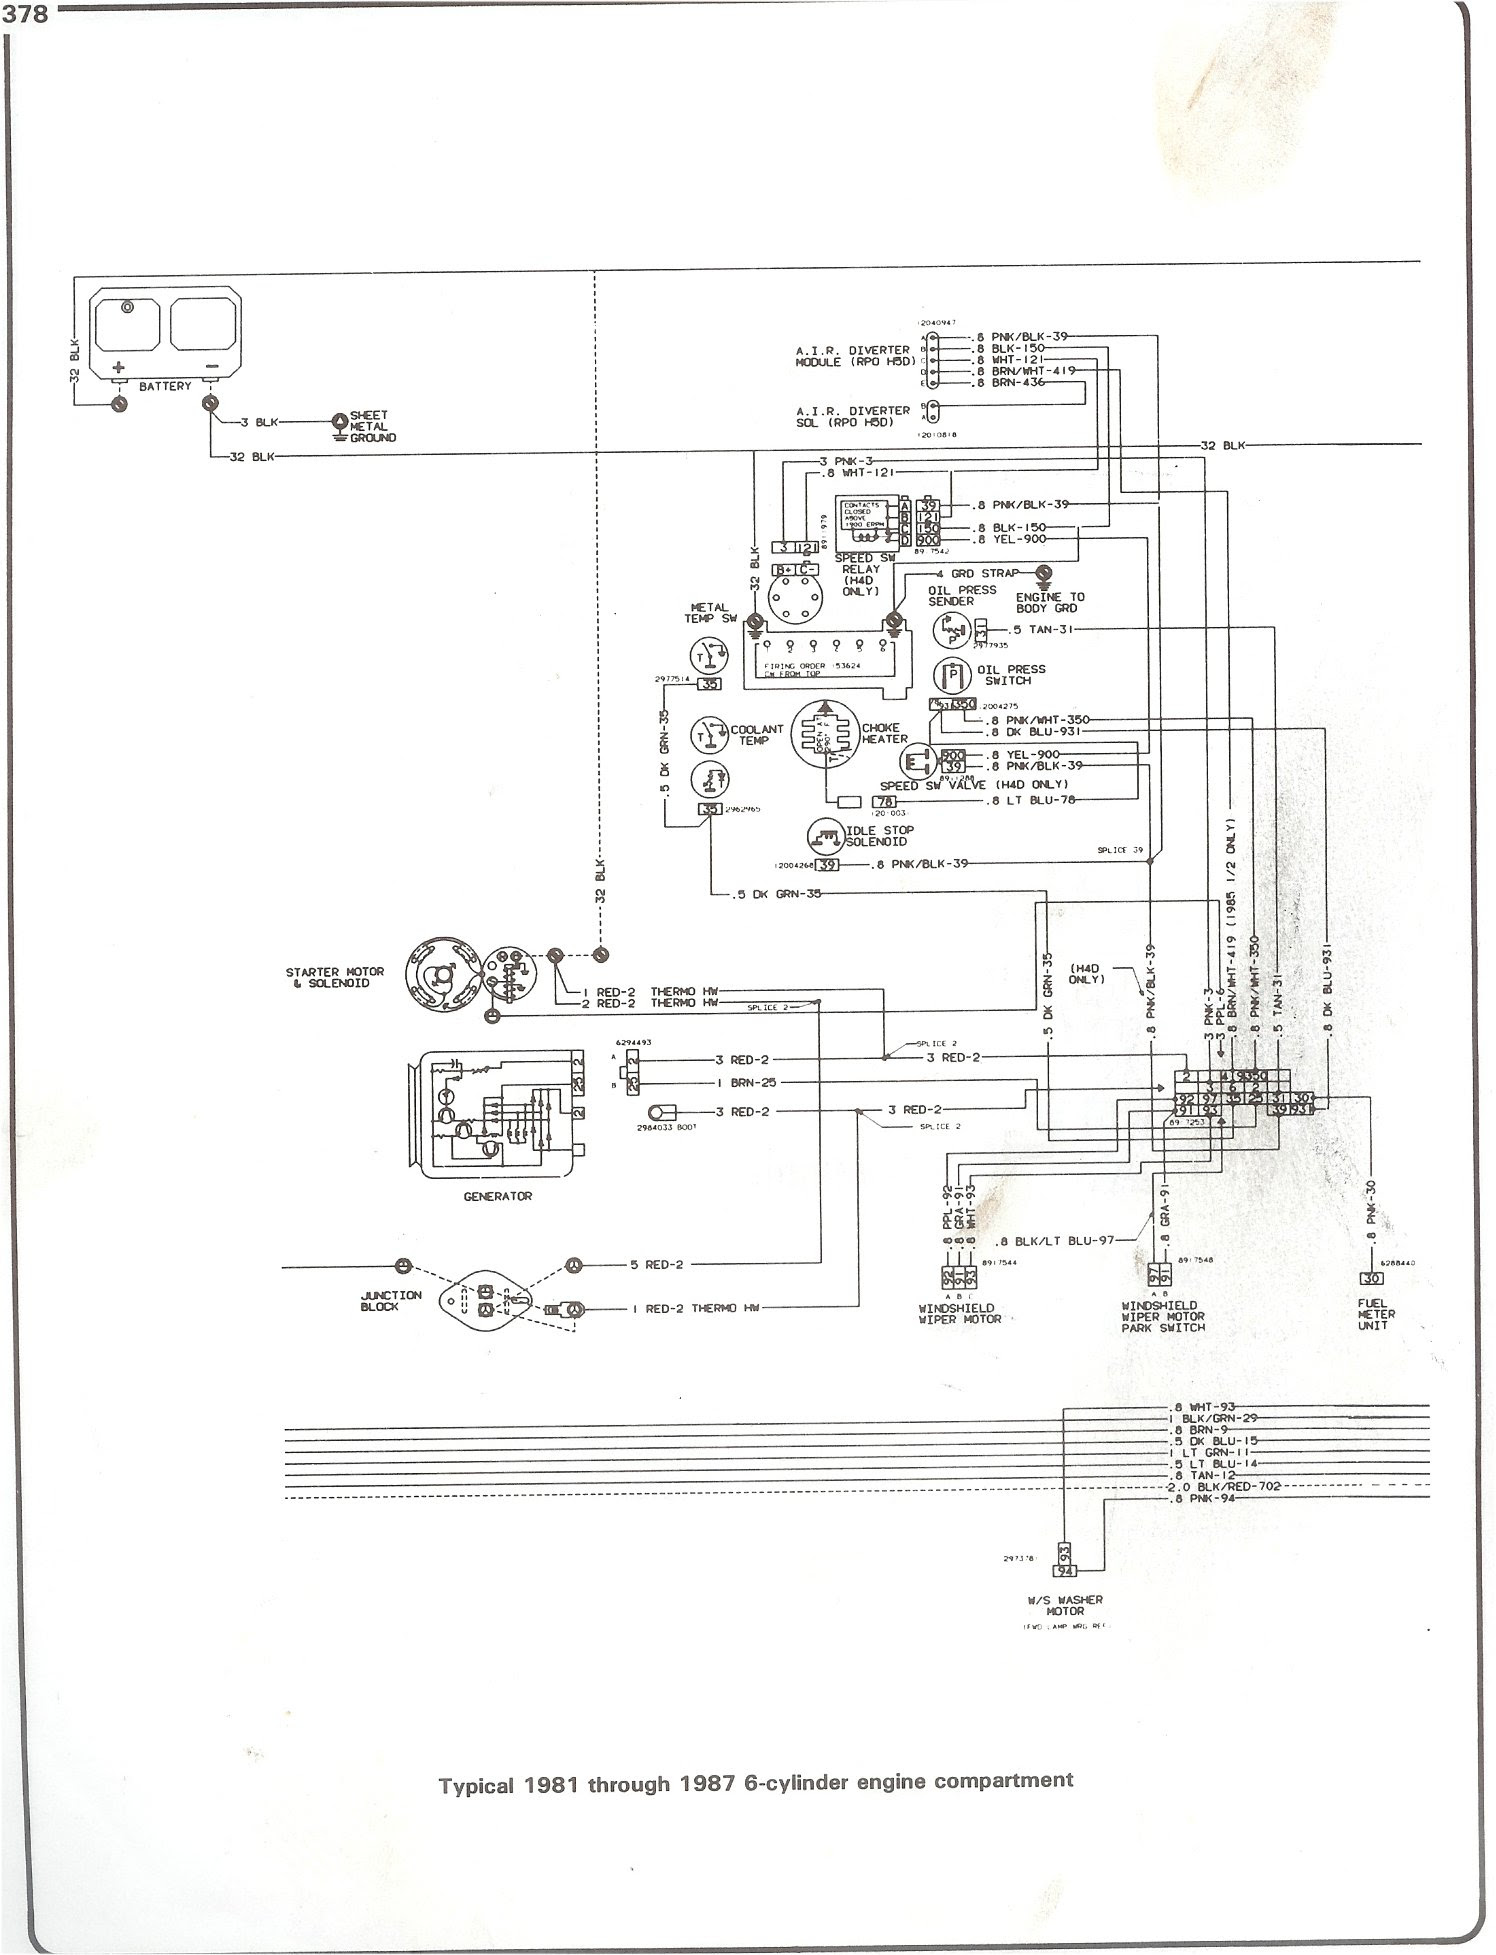 Radio Wiring Diagram 1981 Chevy C10 FULL HD Version Chevy C10 -  KAAS-DIAGRAMBASE.EMBALLAGES-SOUS-VIDE.FR Diagram Database - EMBALLAGES-SOUS-VIDE.FR